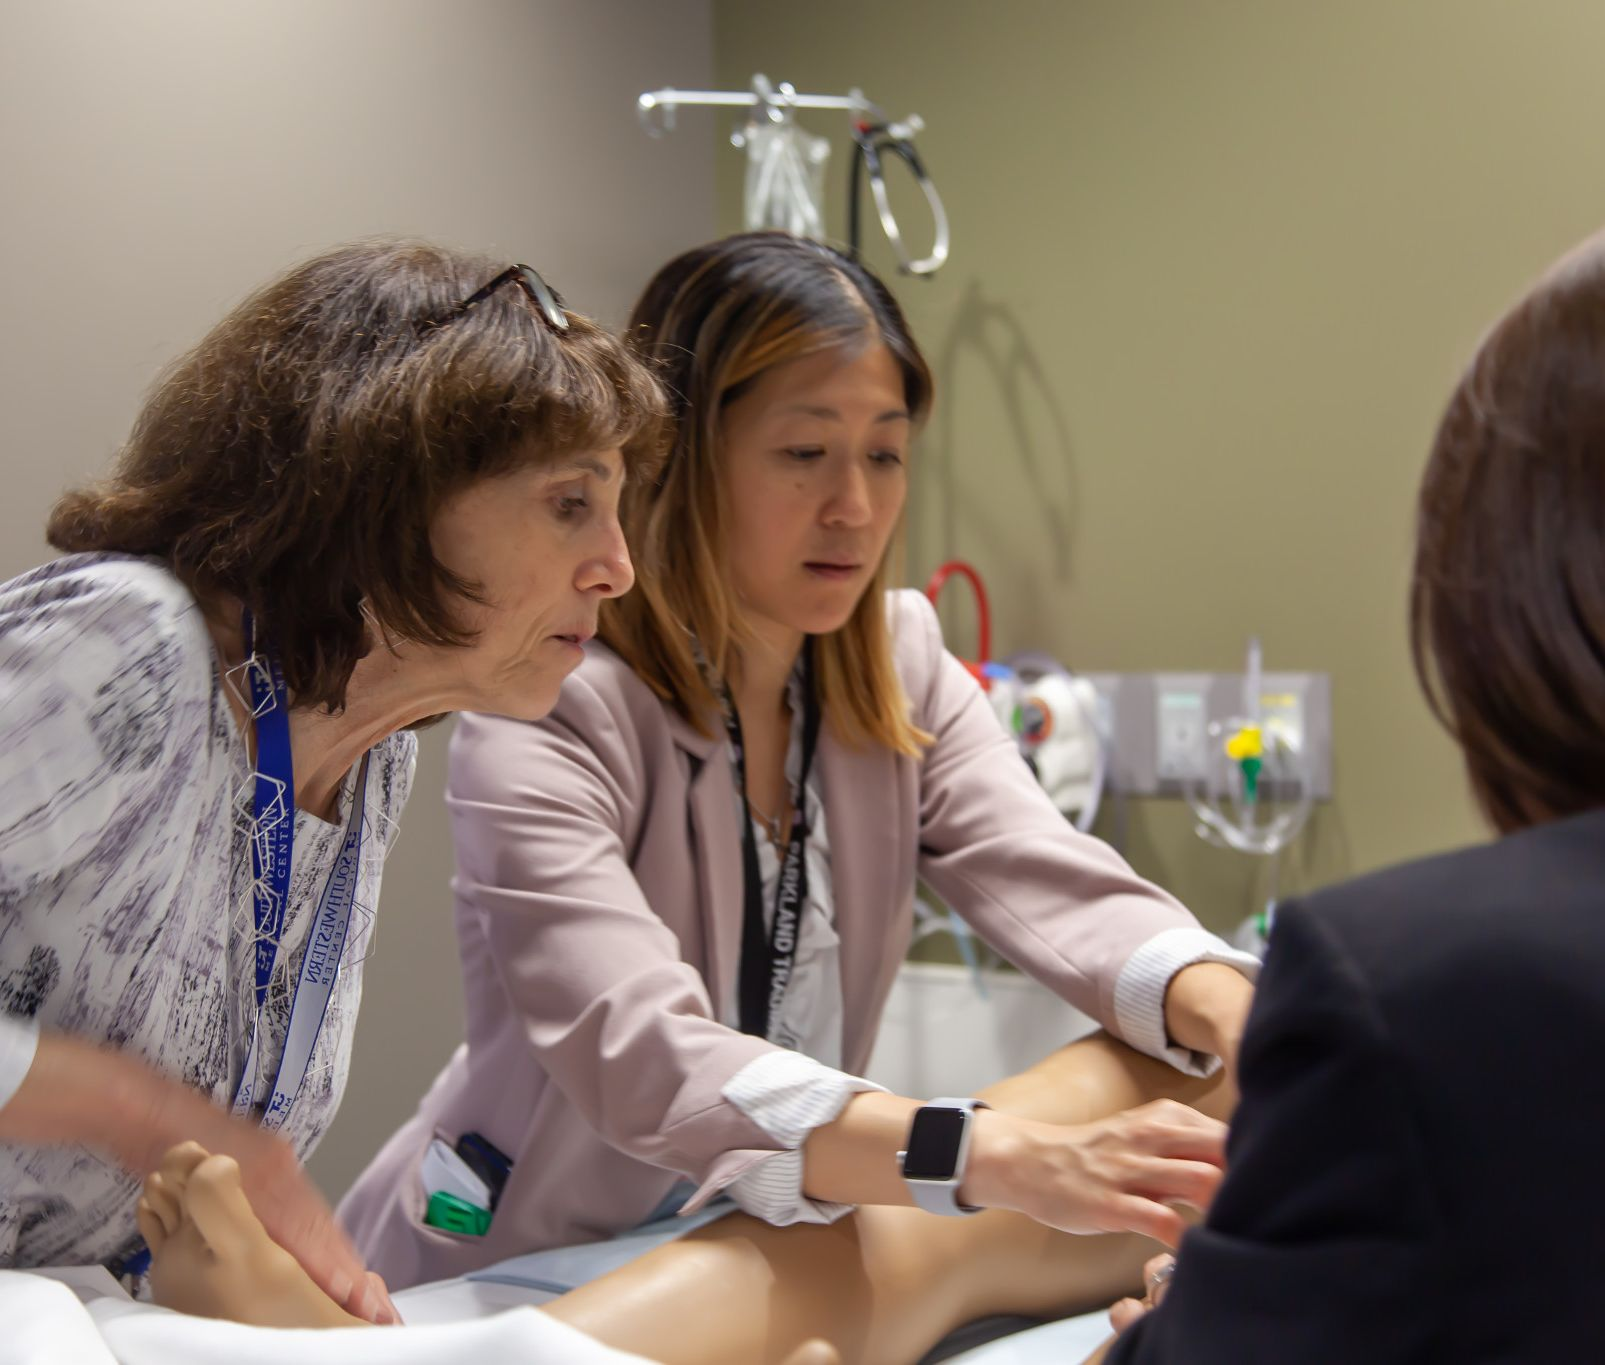 Dr. Caroline Park led a study finding complex simulated surgery training can help trainees and their care teams shave critical minutes off lifesaving trauma interventions in real care settings.